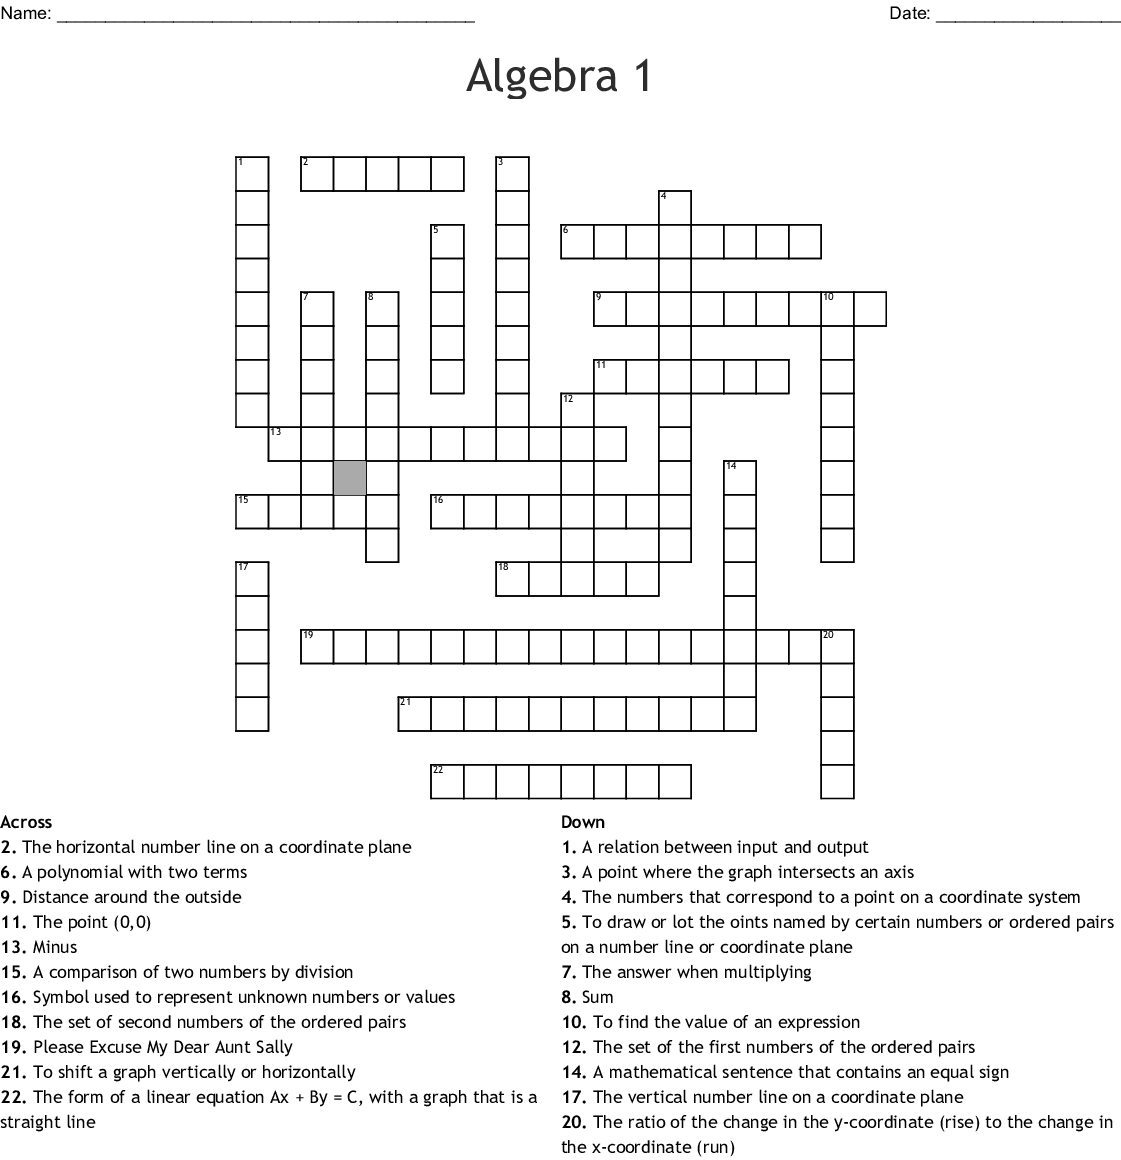 Algebra 1 Crossword - Wordmint - Printable Crossword #1